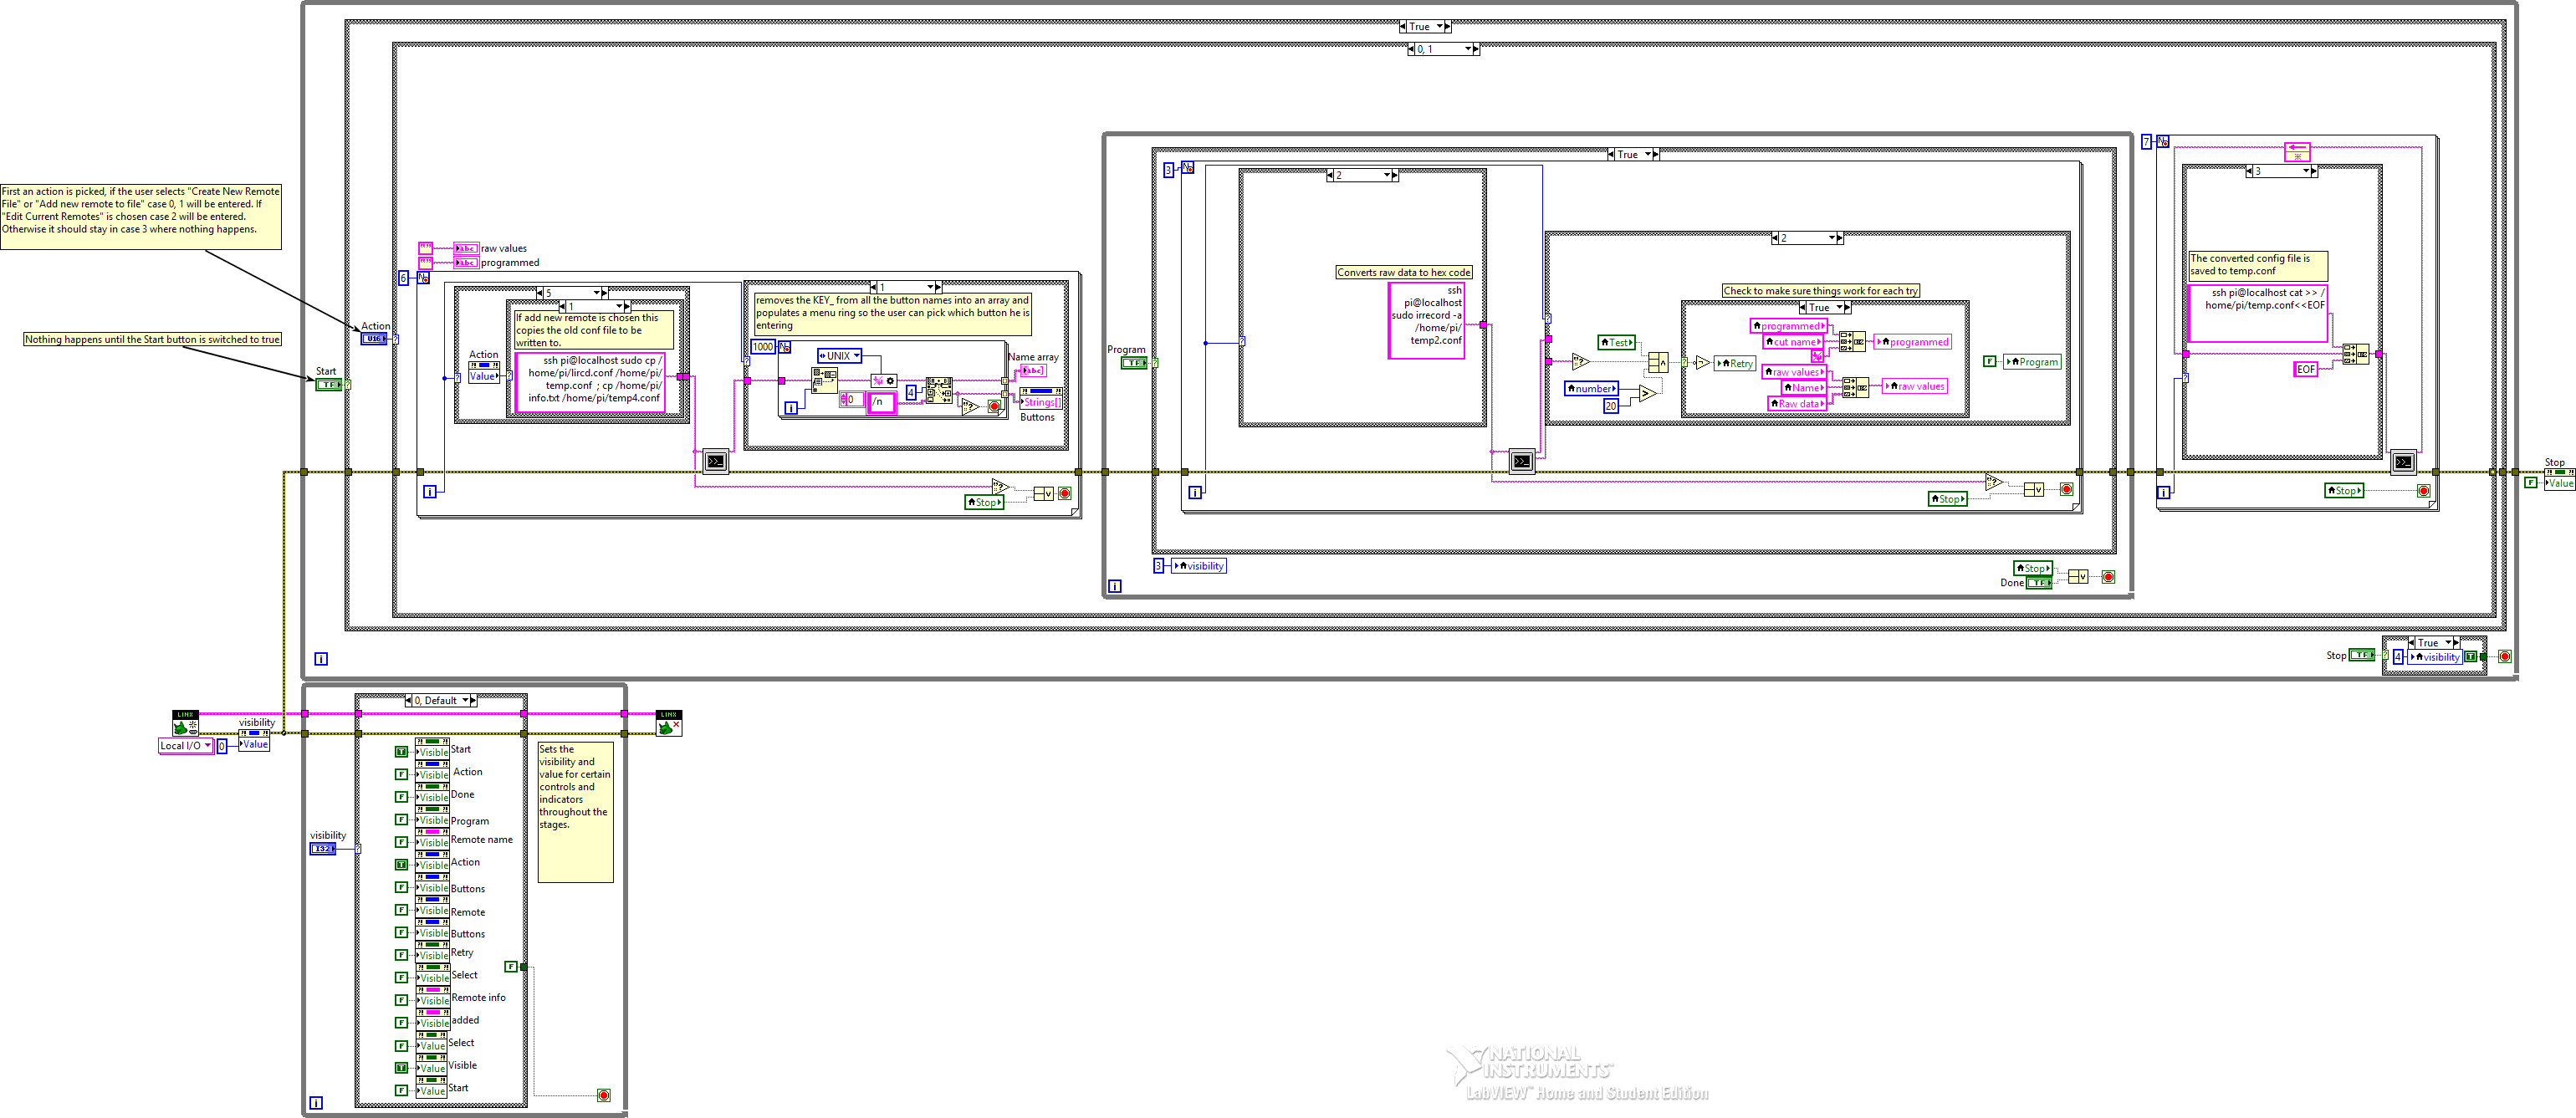 Picture of LabVIEW Block Diagram